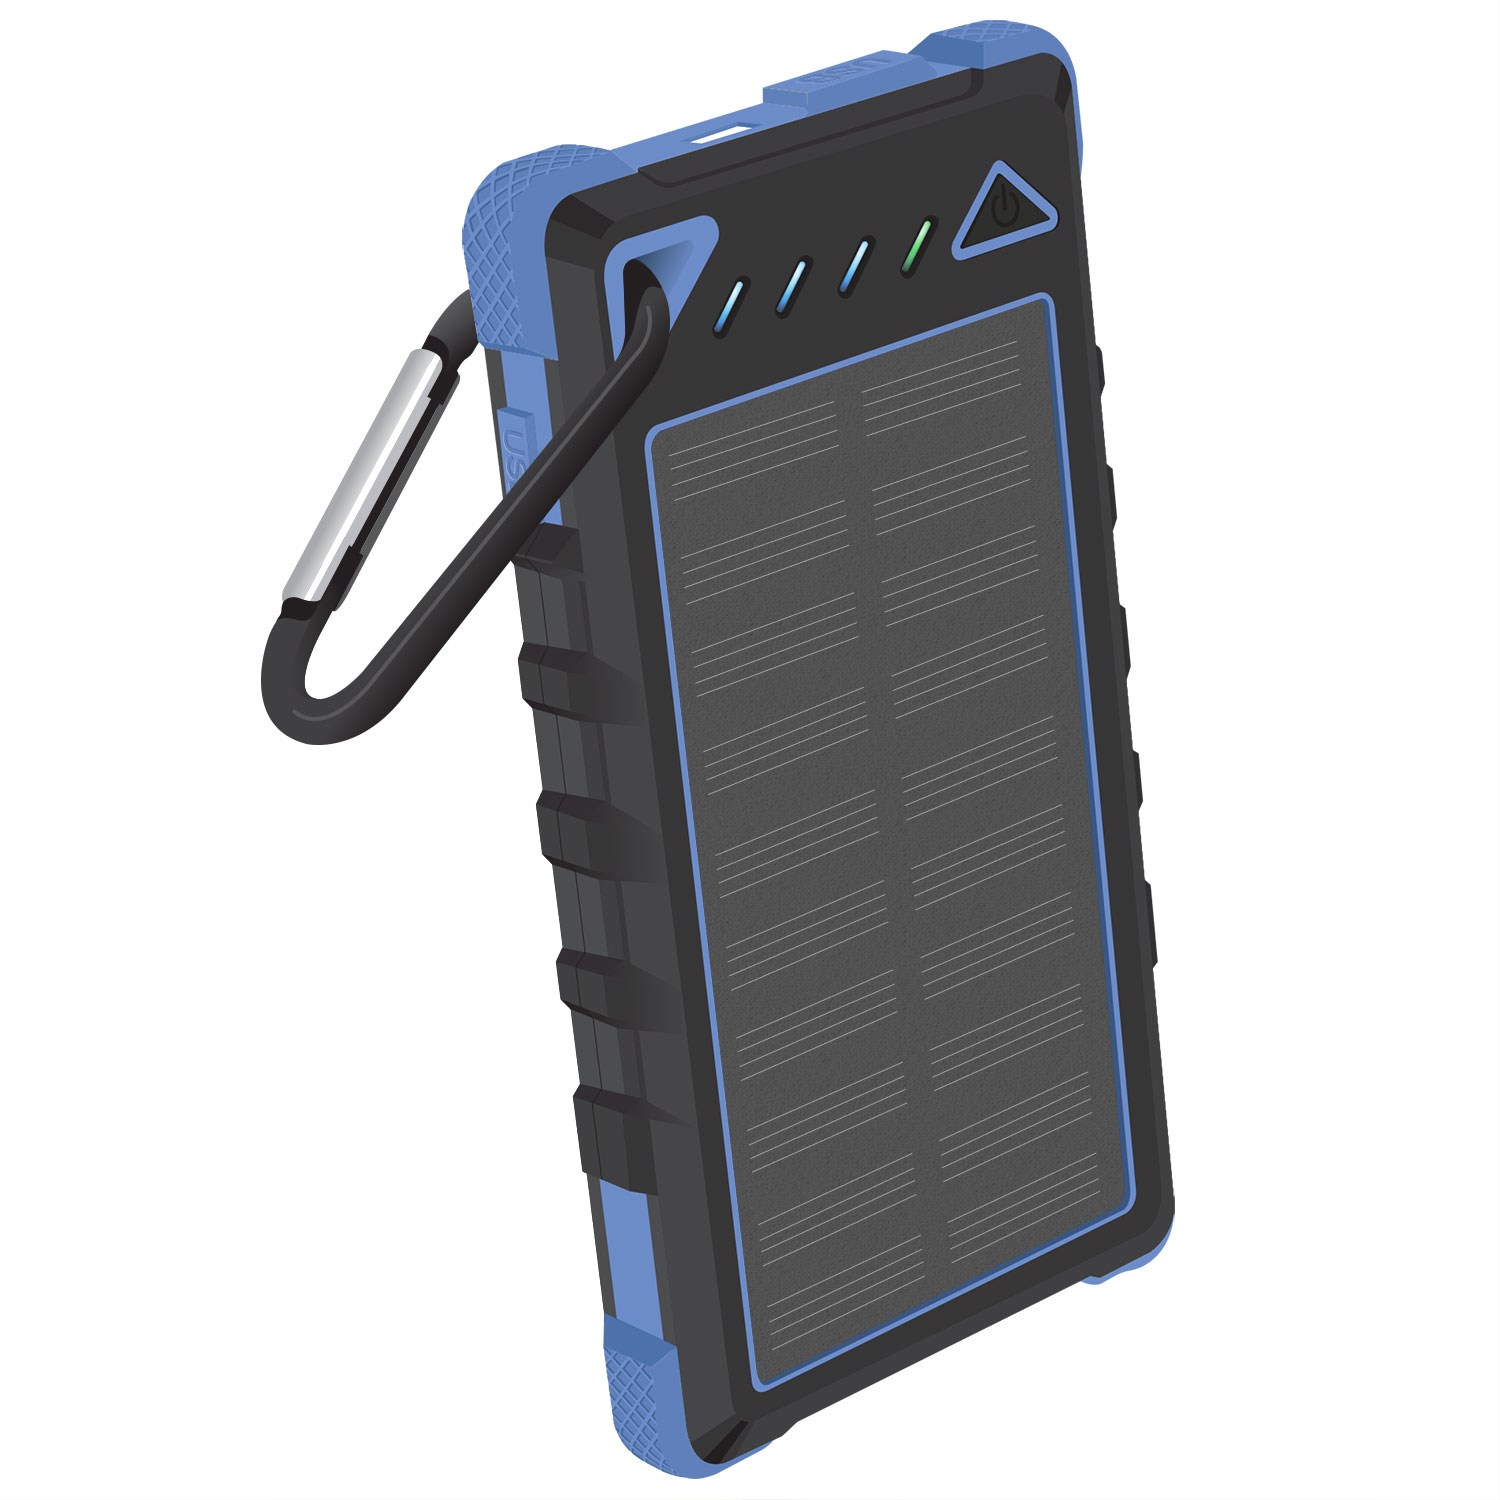 LG Saber Solar Powered Portable PowerBank Blue